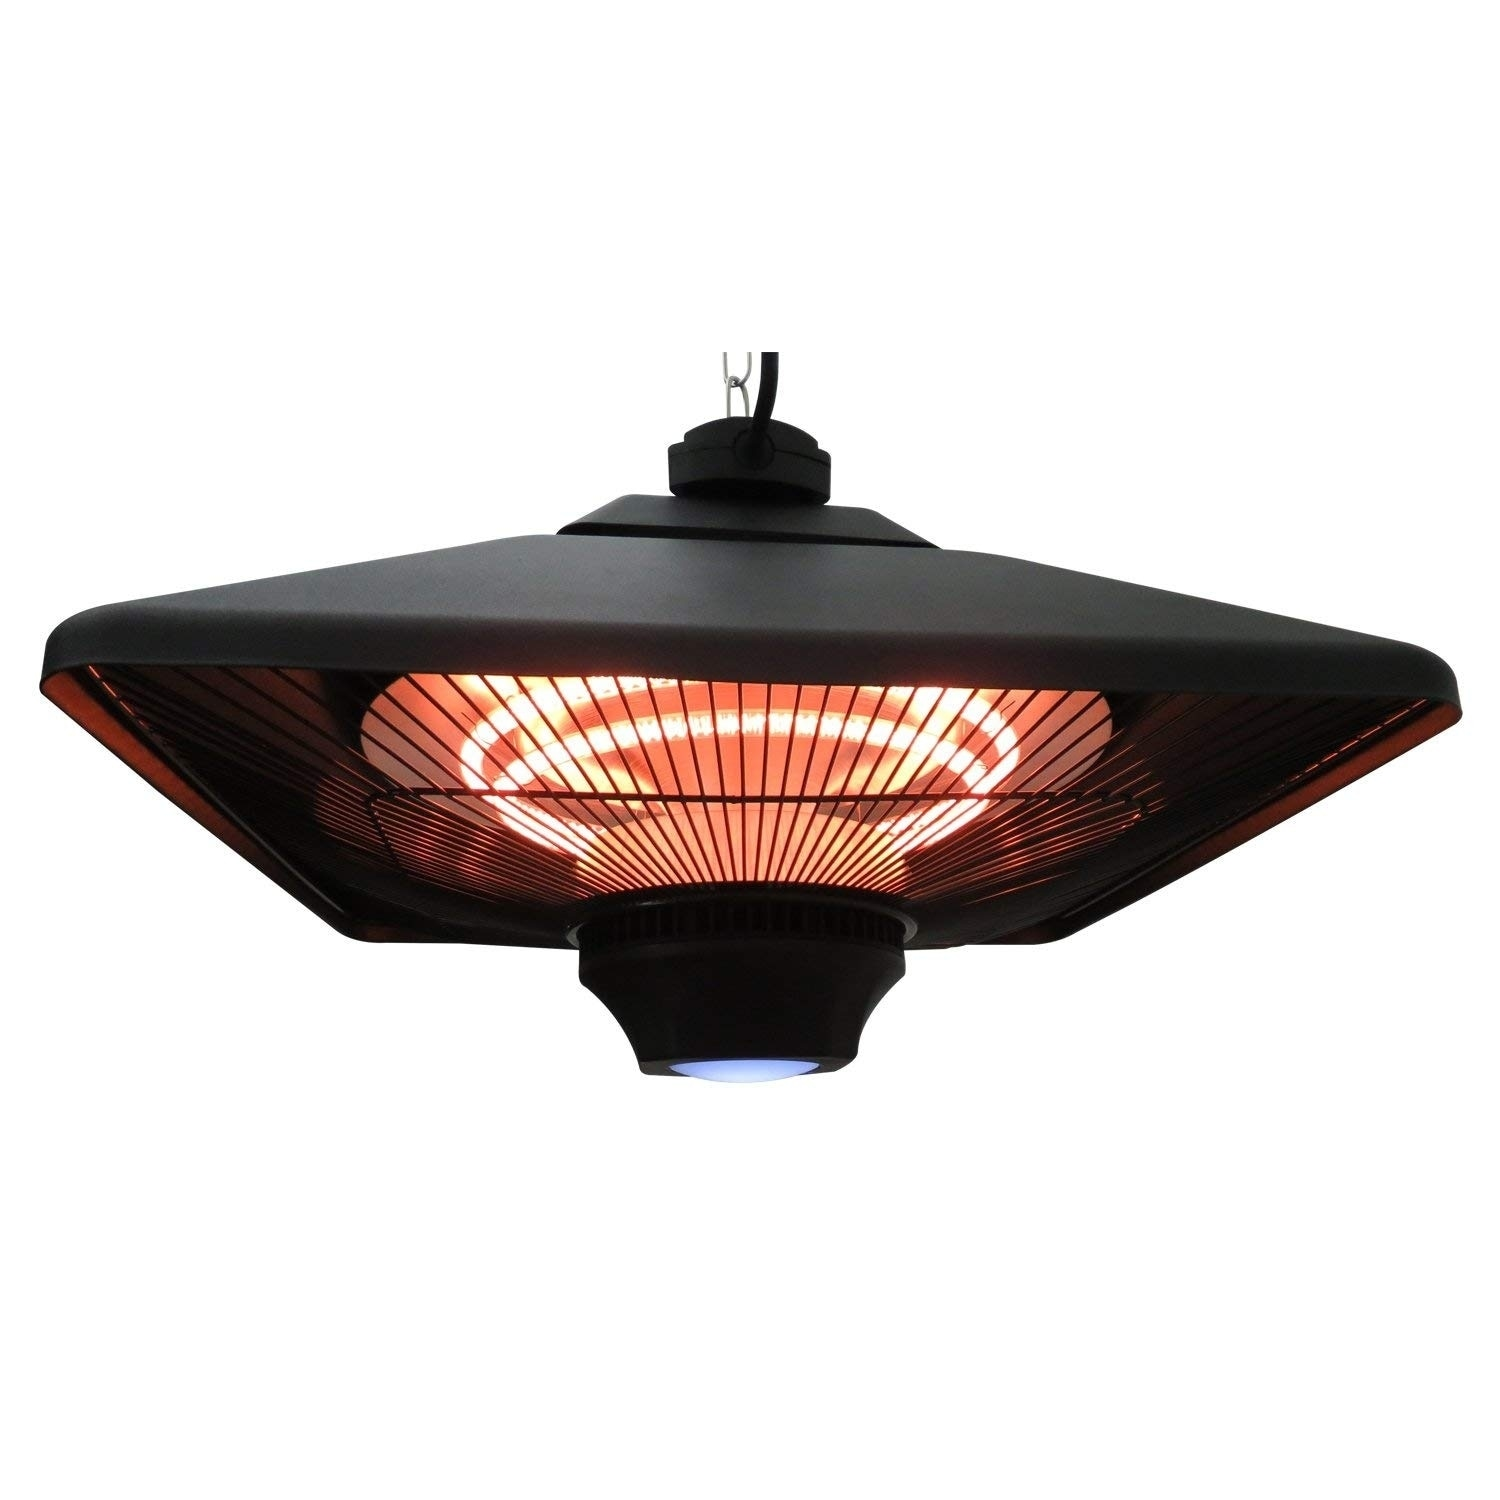 Shop Outsunny 1500W Ceiling Mounted Square Outdoor Electric Patio Heater  With LED Light And Remote Control   Free Shipping Today   Overstock.com    22326451